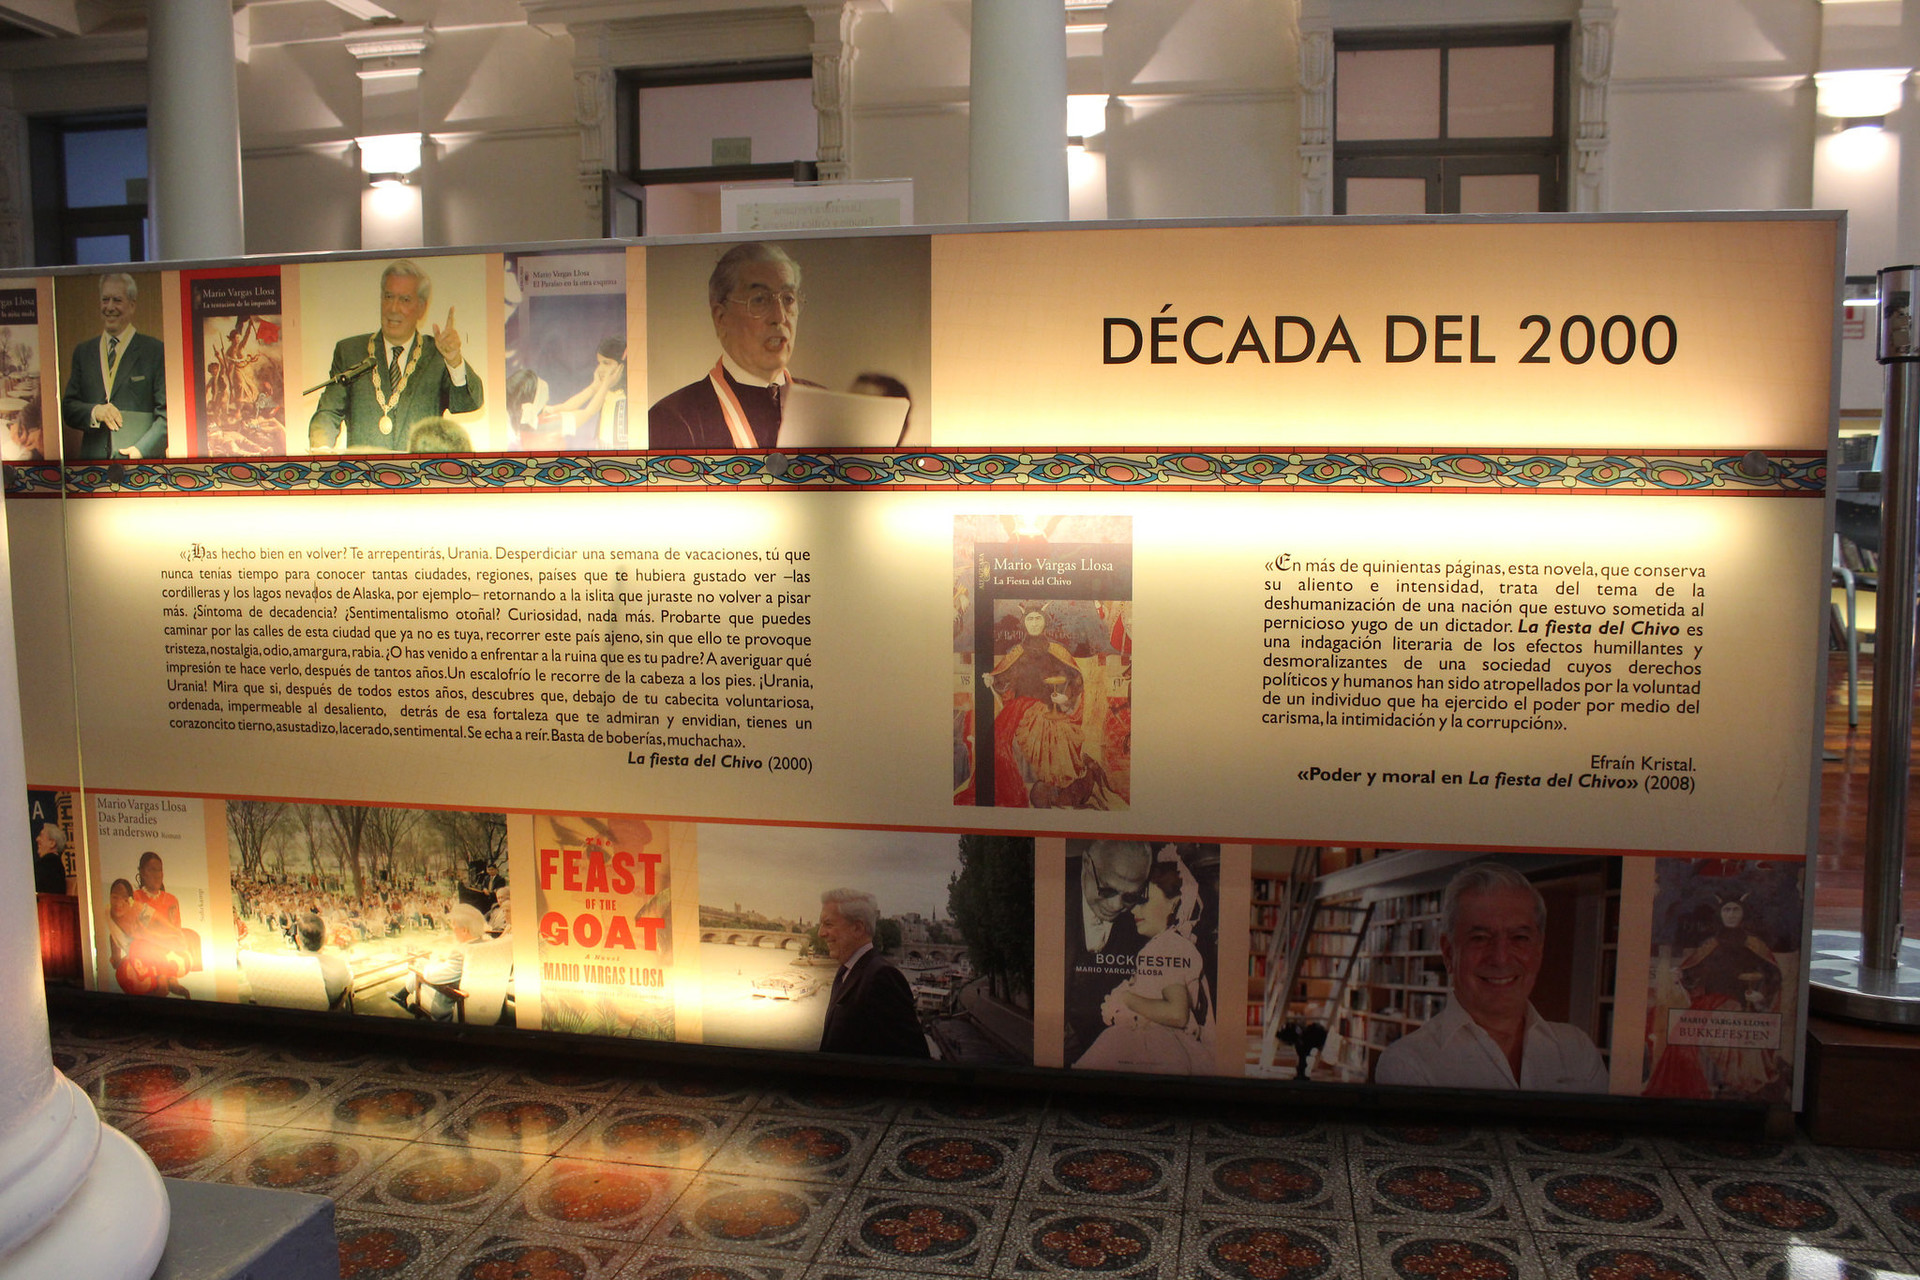 Peruvian art and history found here in writing